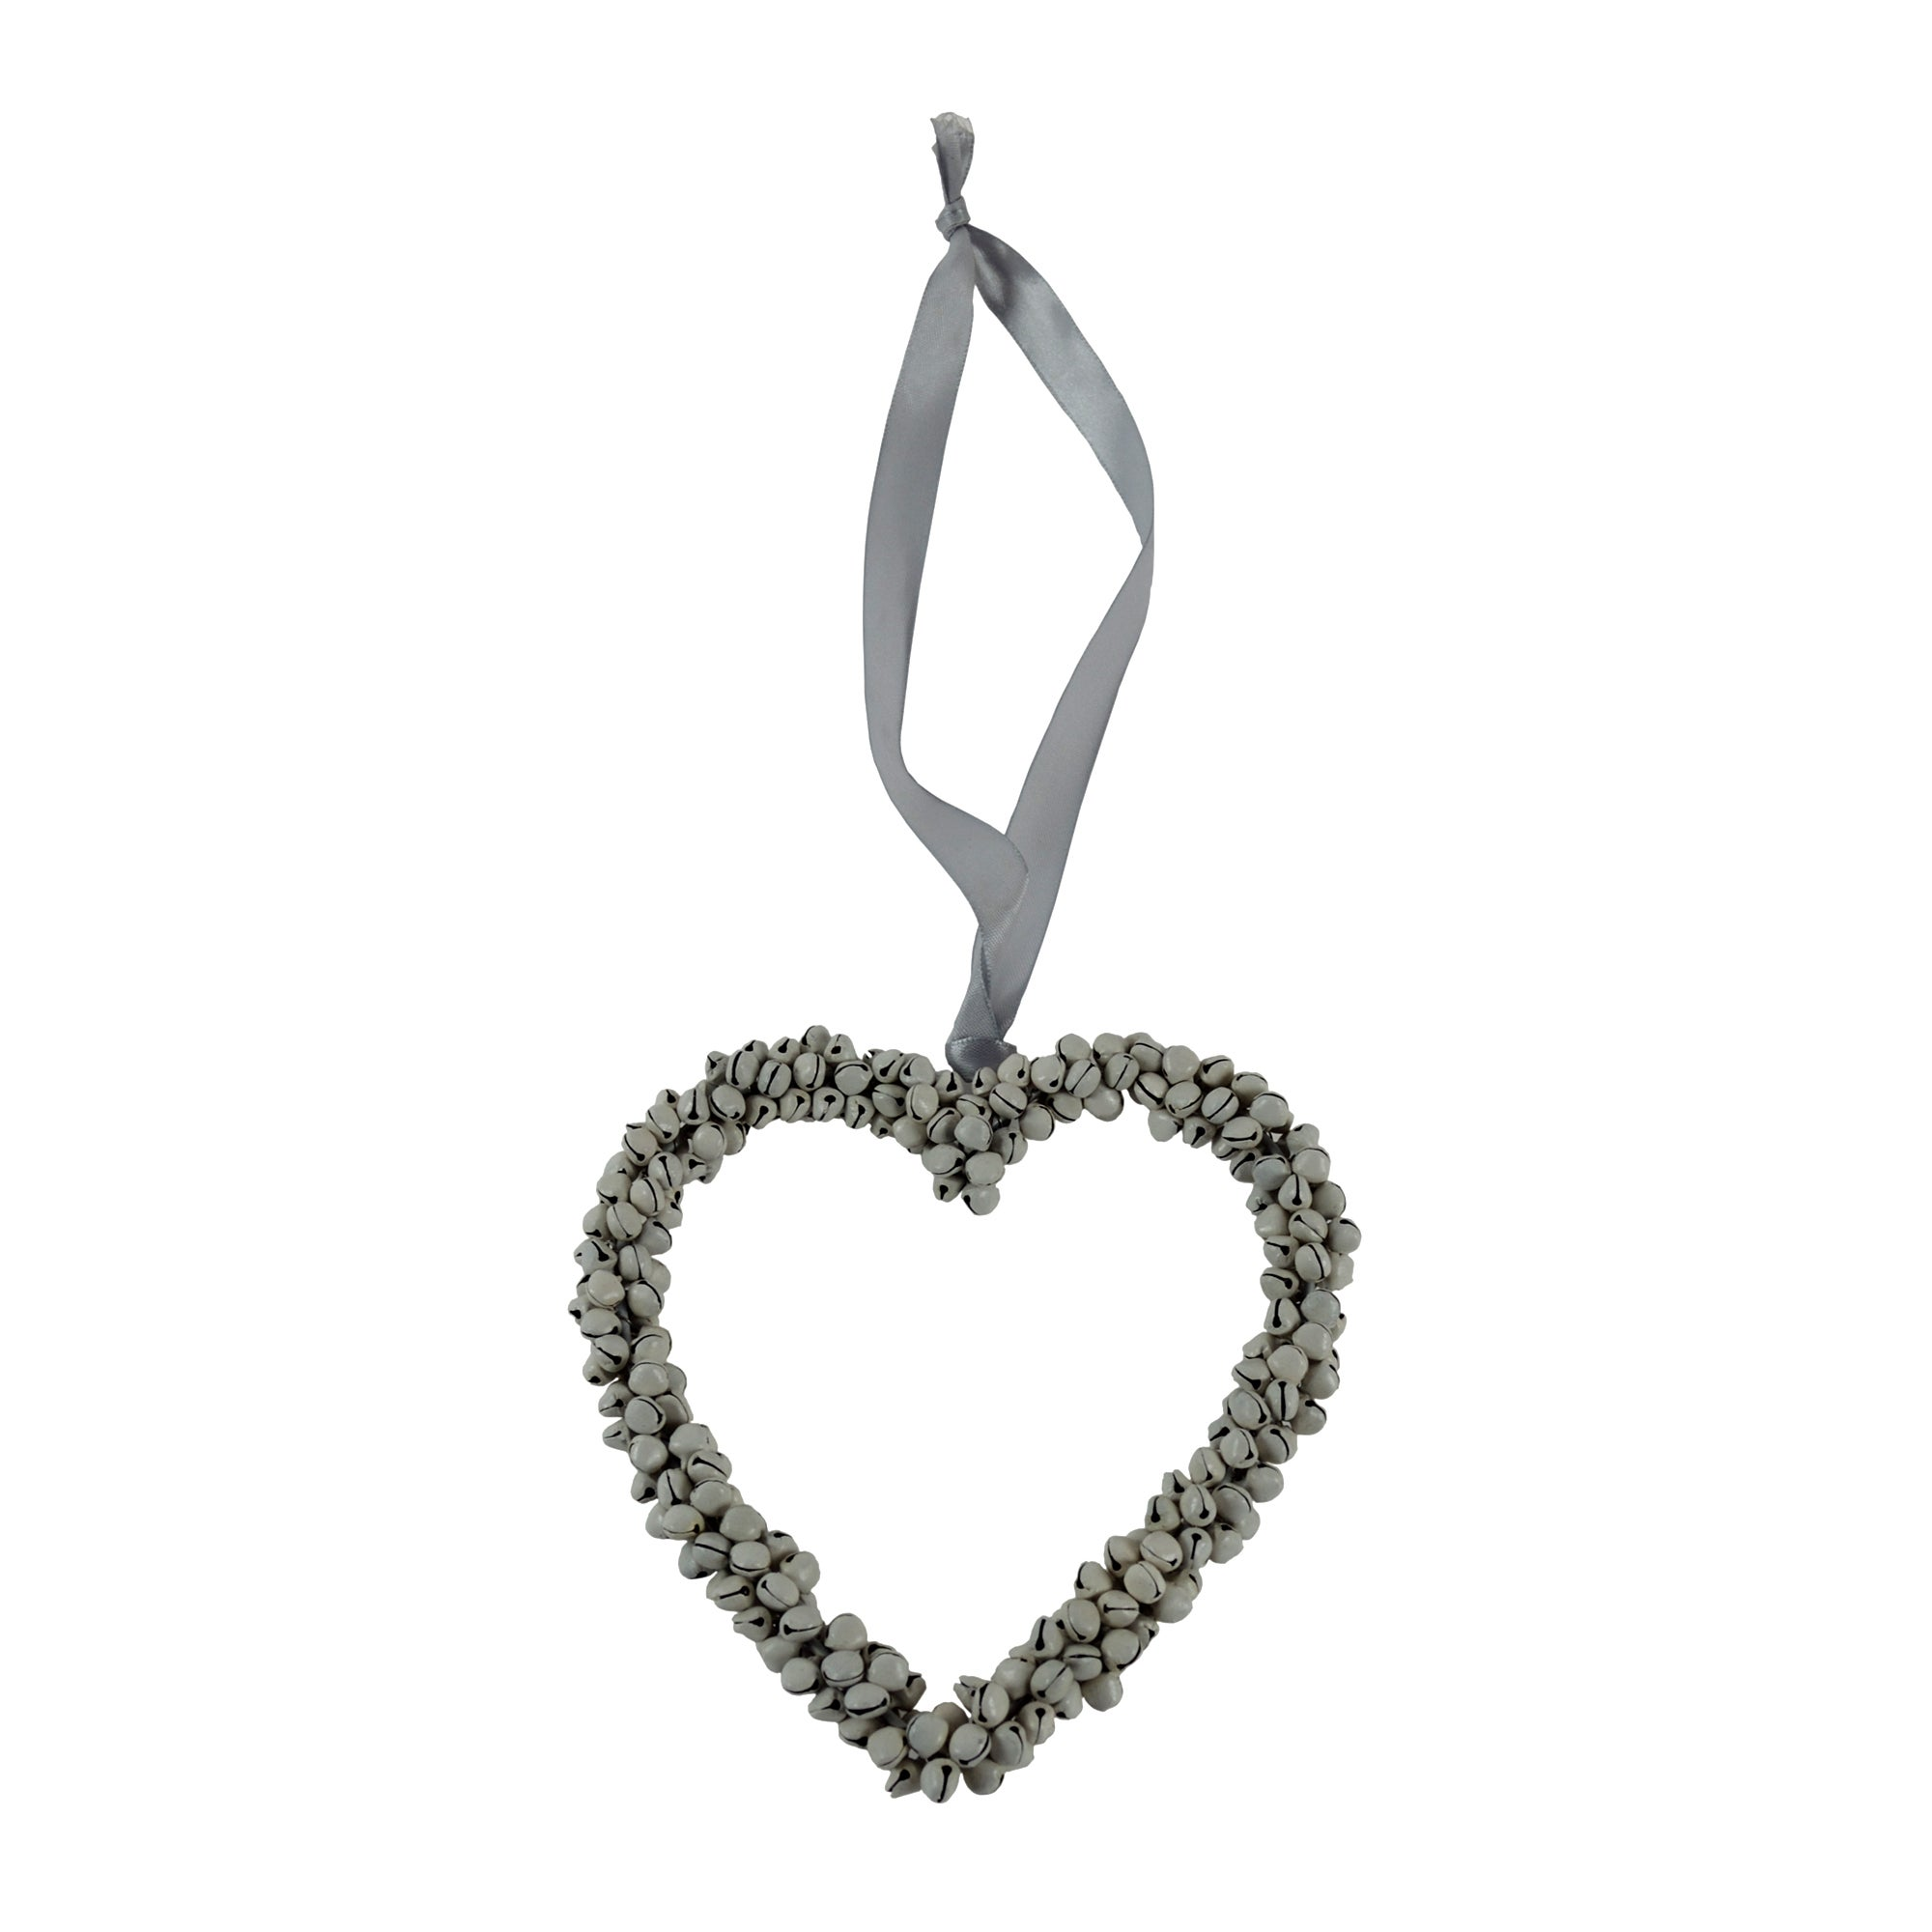 Plum Pudding Collection Large Hanging Heart with Bells